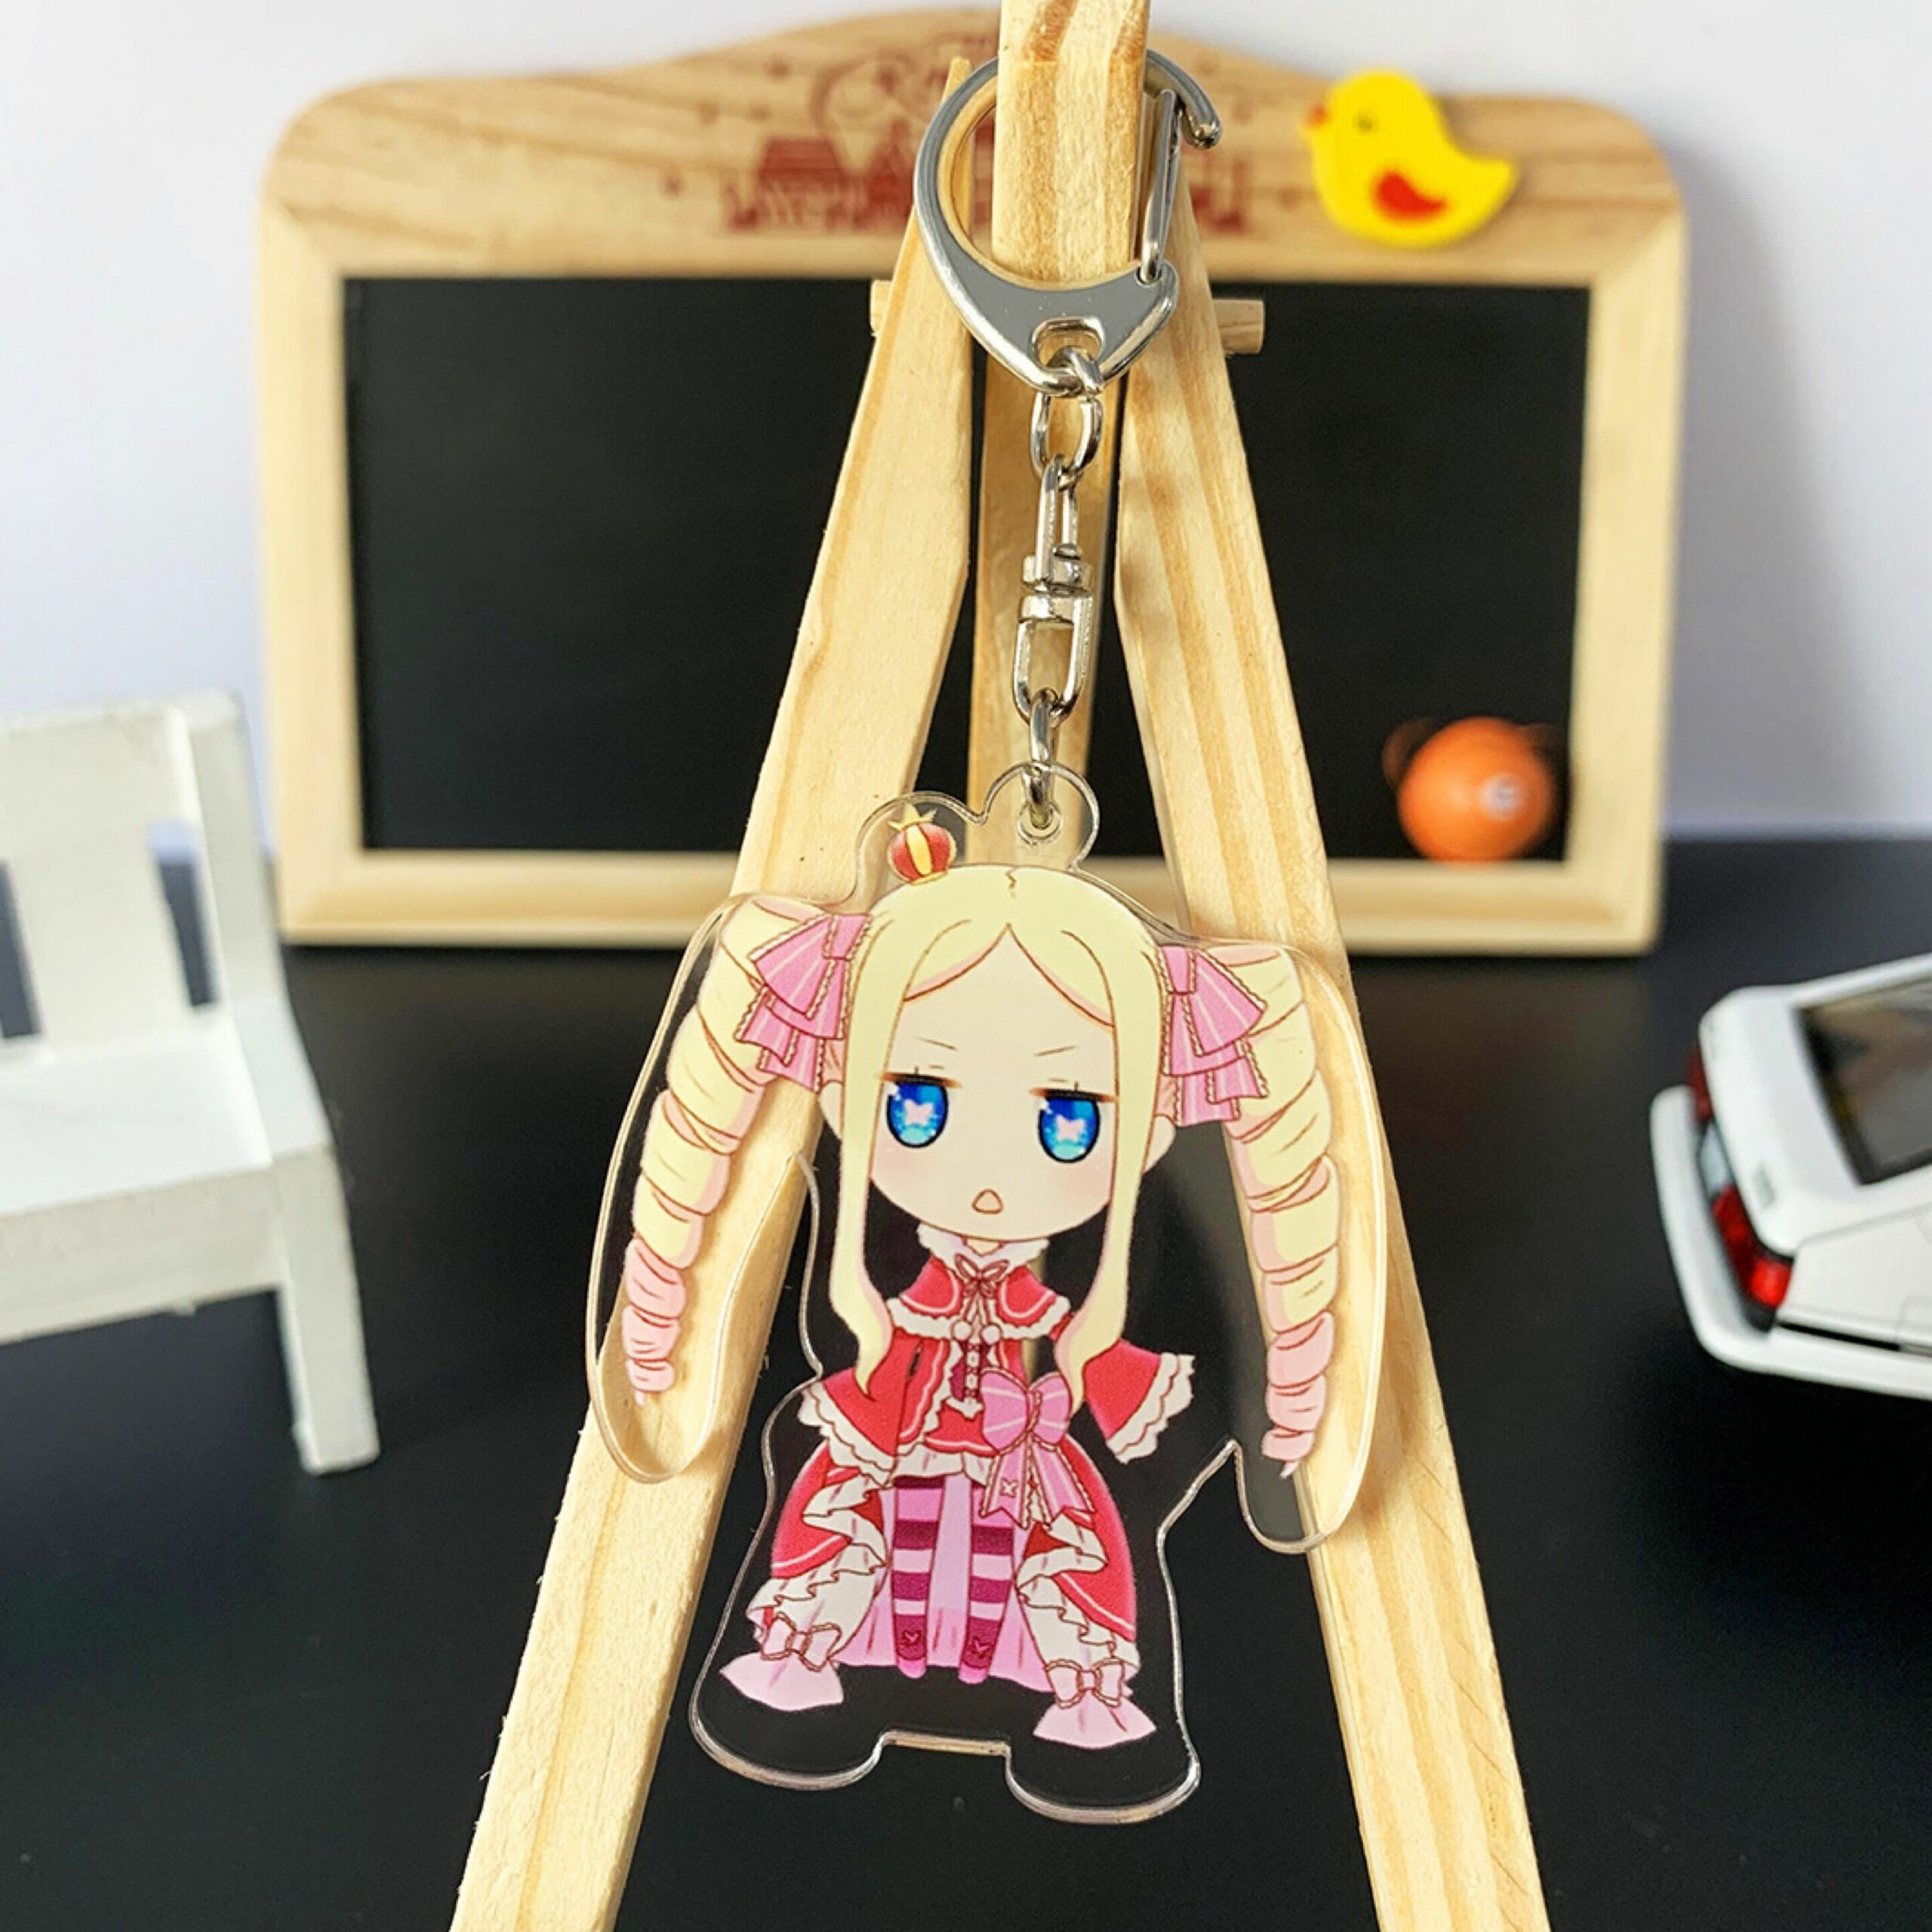 Re:Zero − Starting Life in Another World – Different Characters Cute Keychains (10+ Designs) Keychains